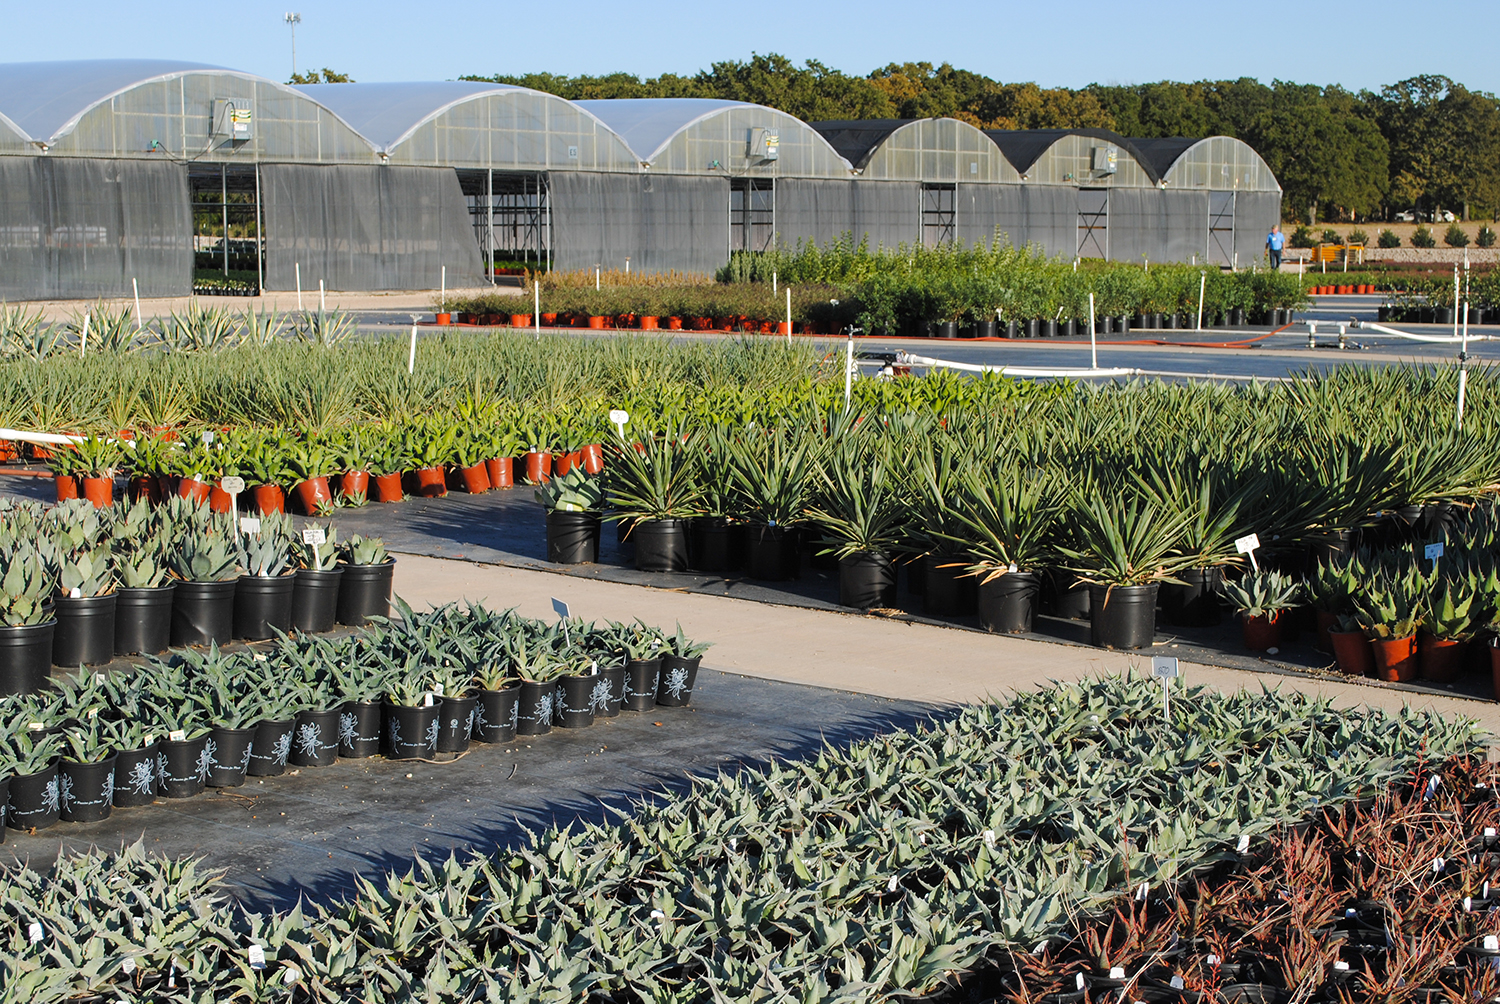 Green Lake Nursery also specialized in various hardy succulents and xeric perennials.